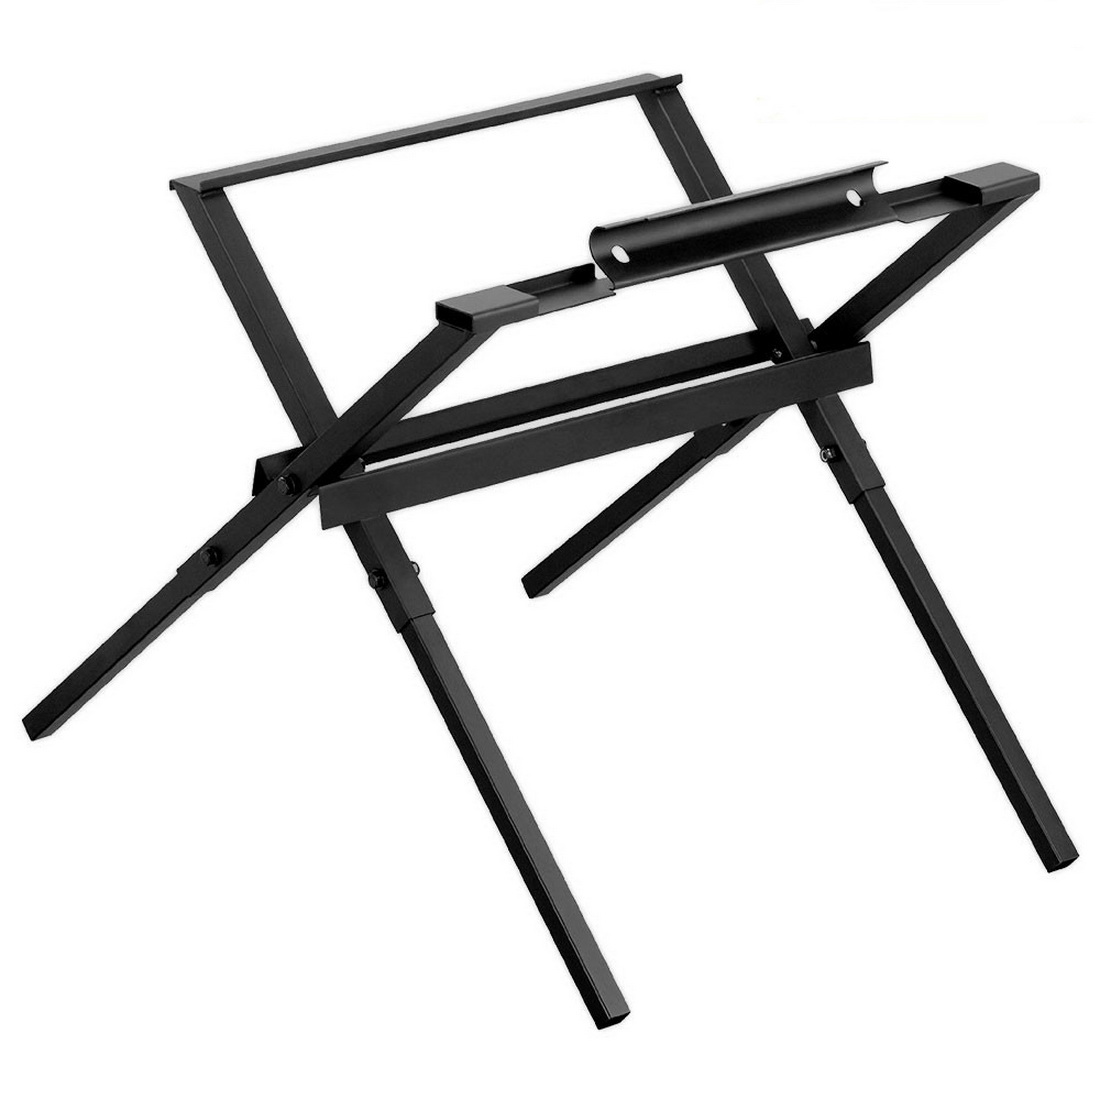 Heavy Duty Table Saw Stand For DW745 Table Saw Steel